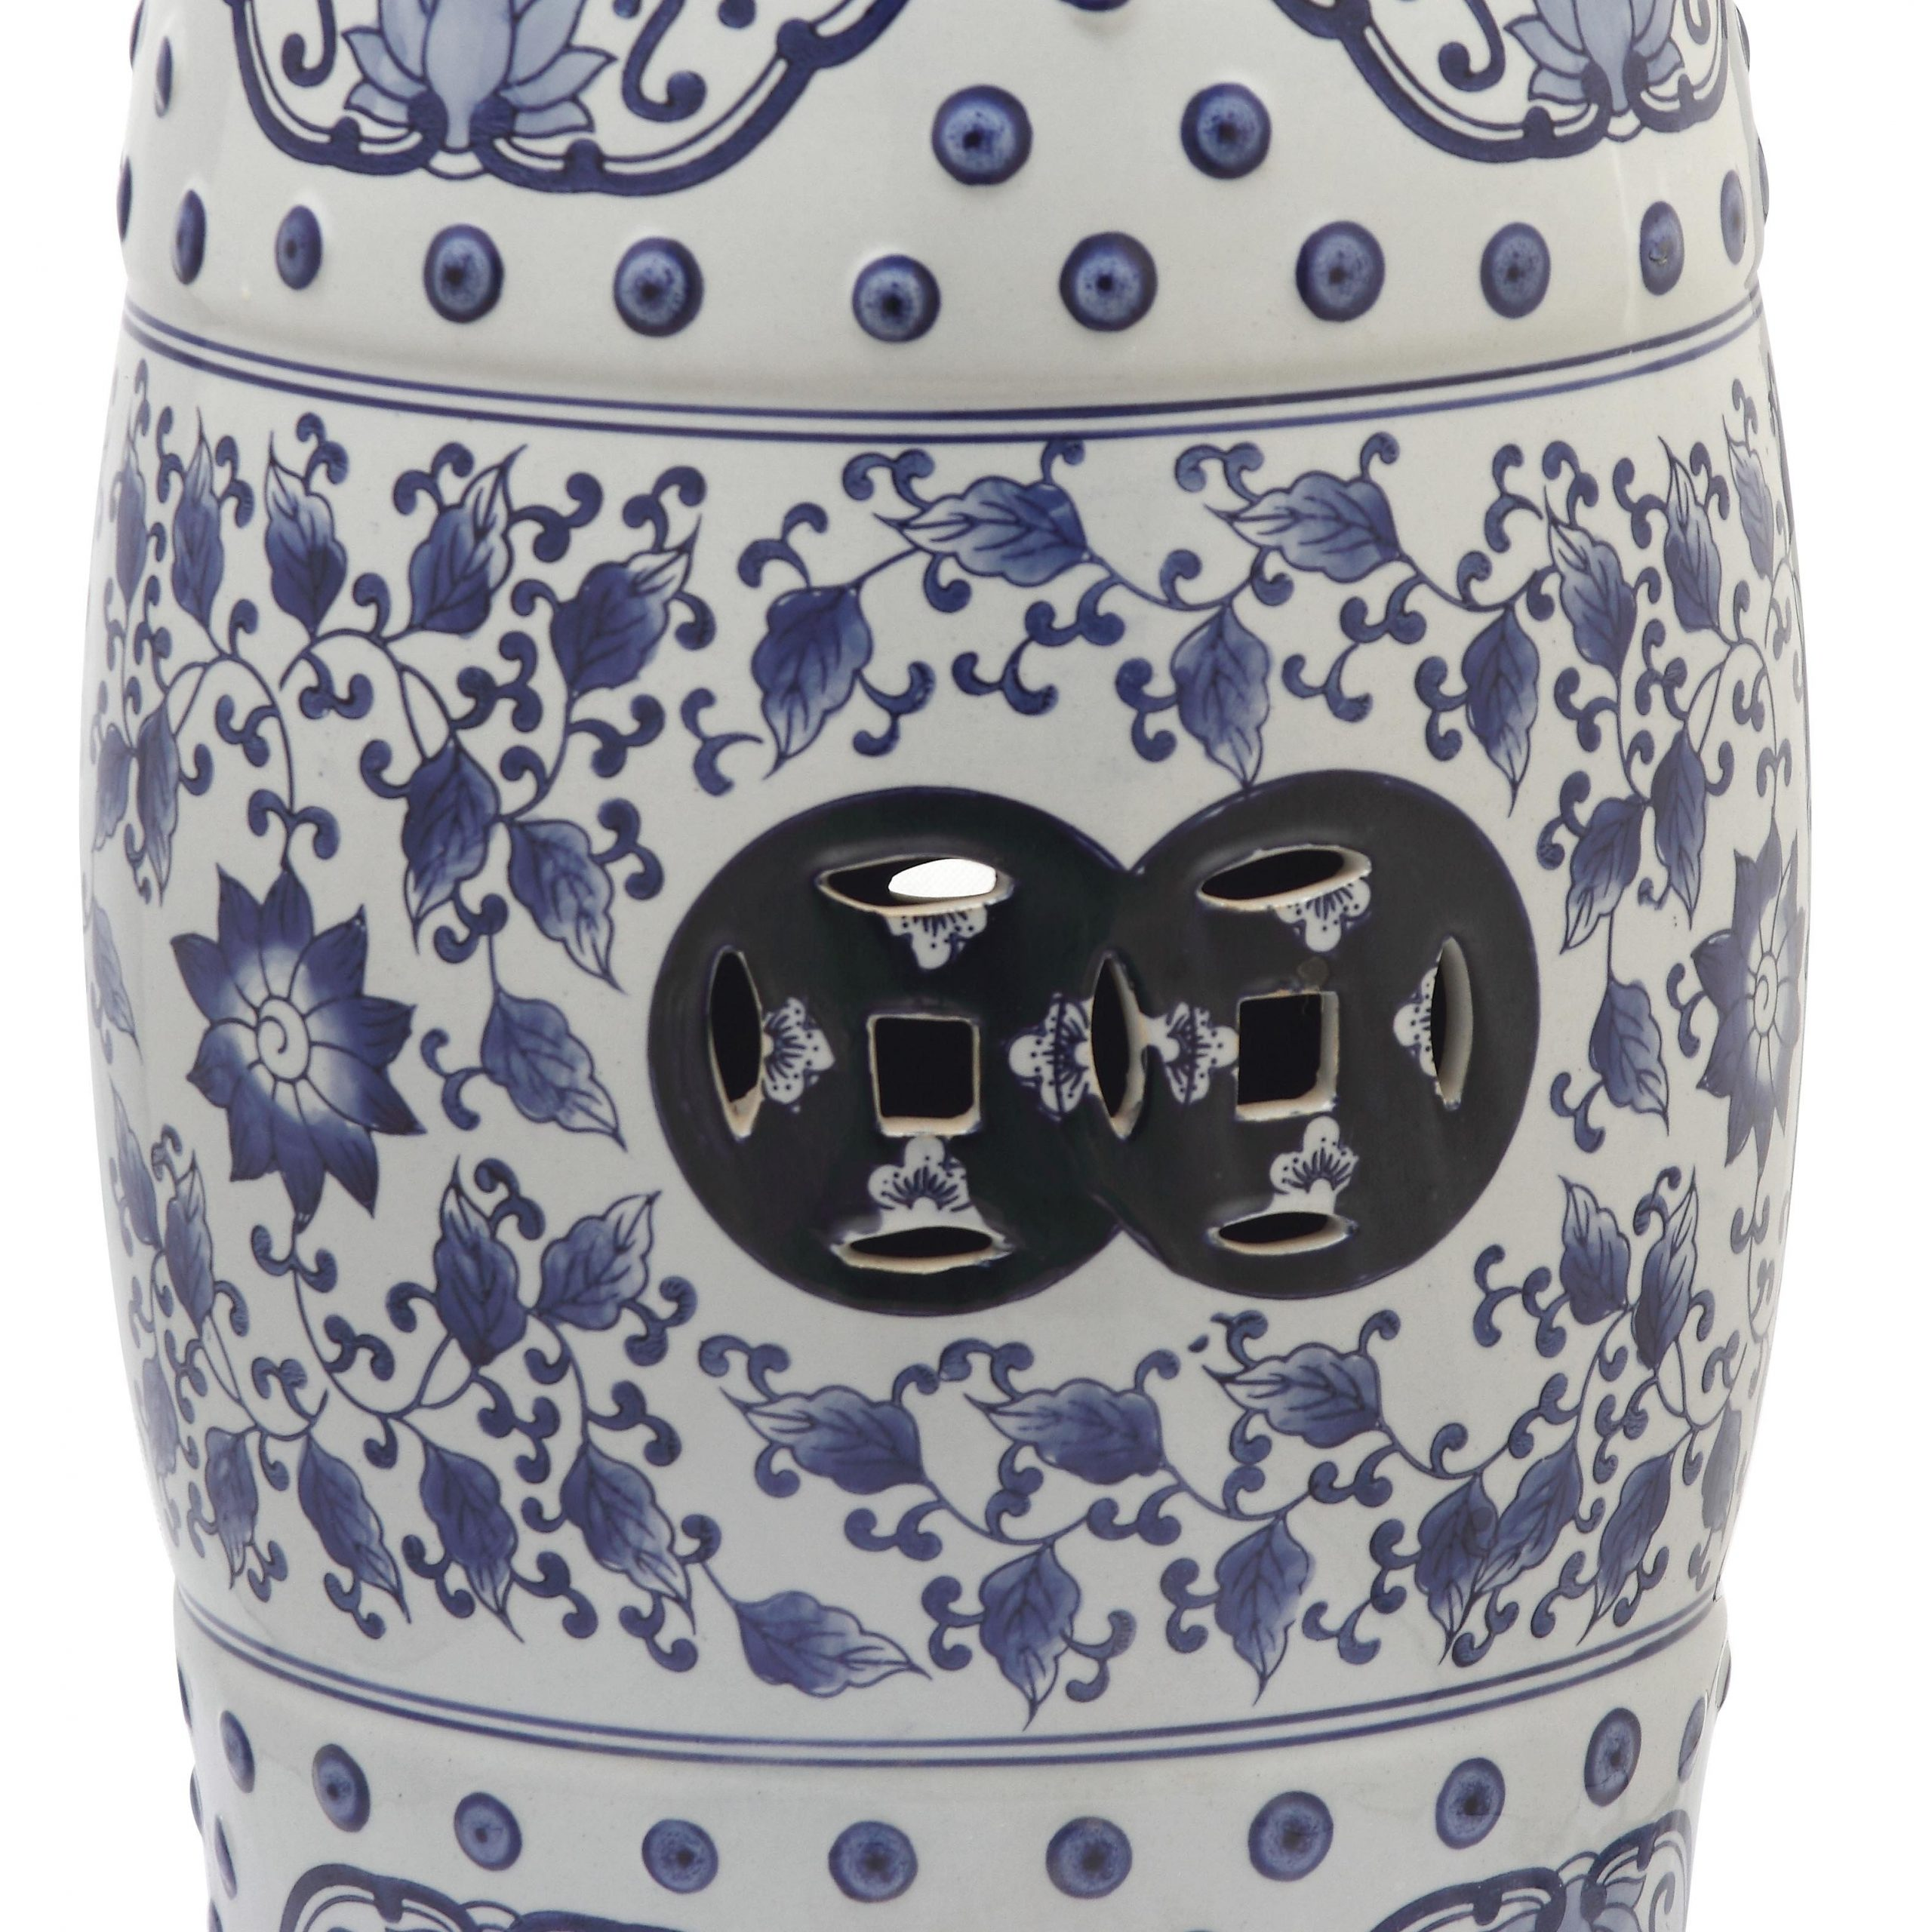 Swanson Ceramic Garden Stools Inside Well Known Blue & White Garden Stools You'll Love In (View 4 of 30)